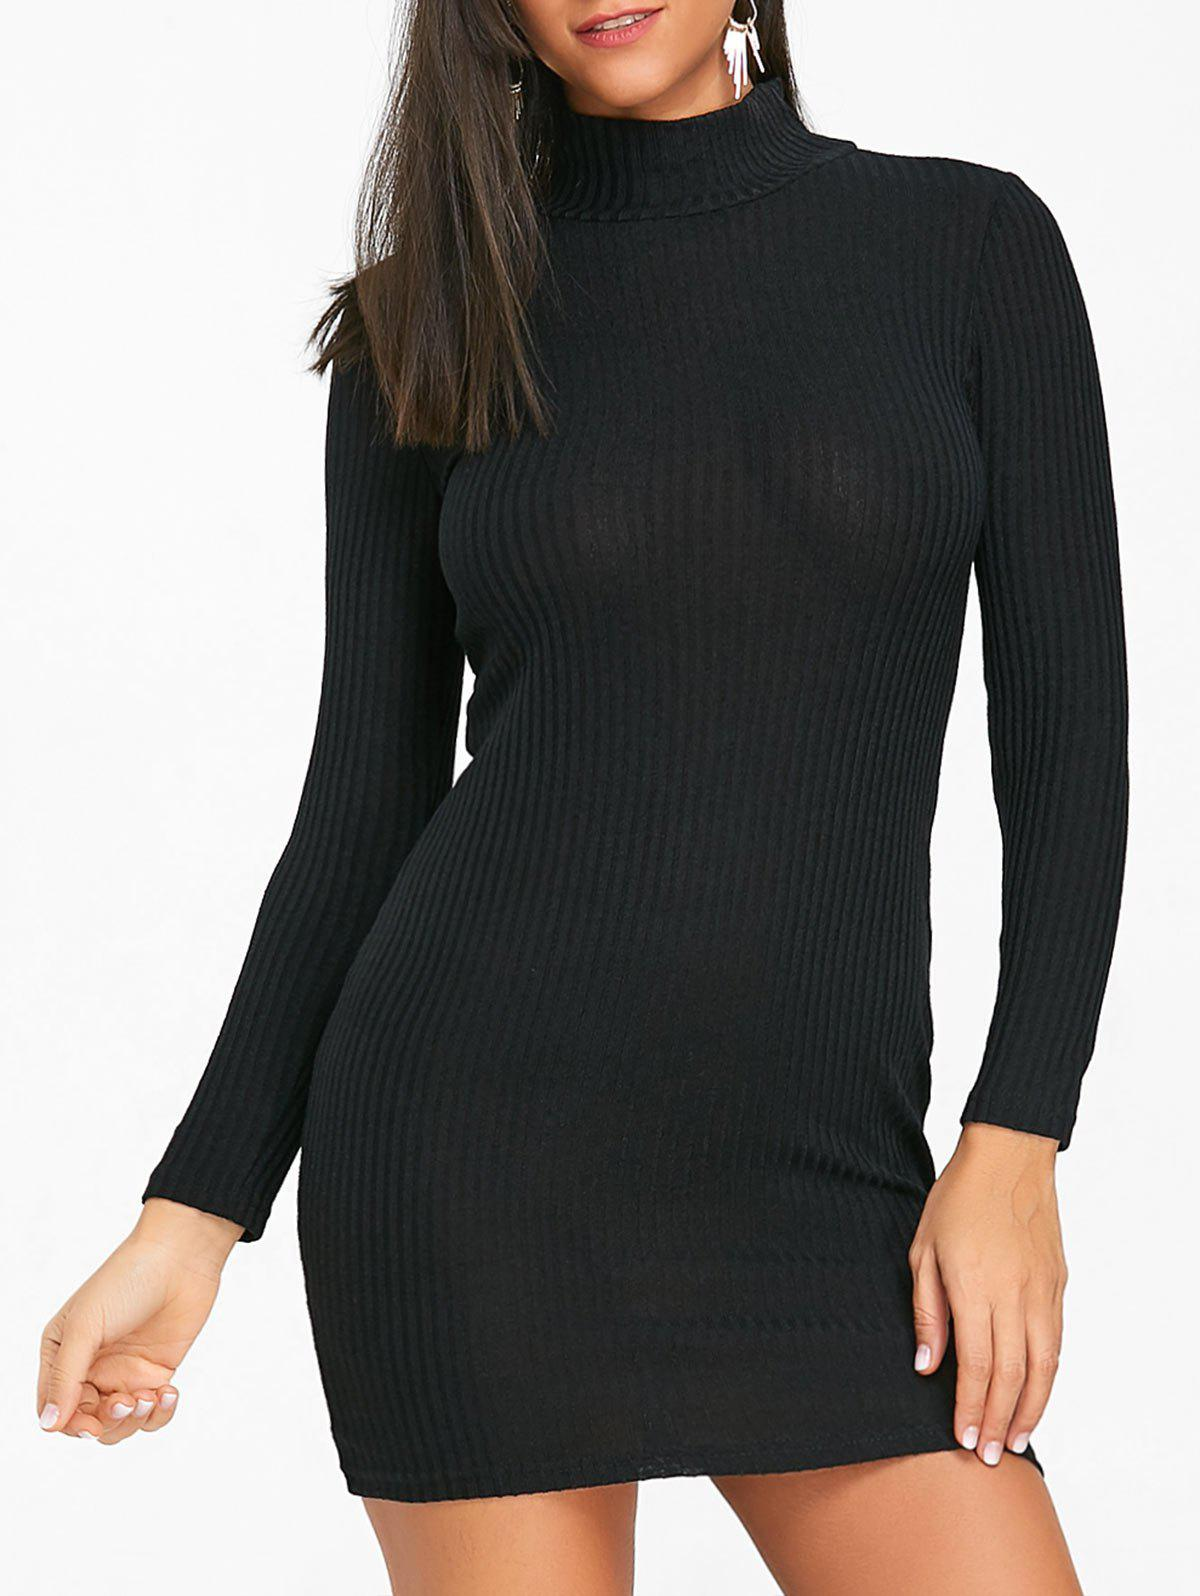 Fancy High Neck Mini Knit Bodycon Dress